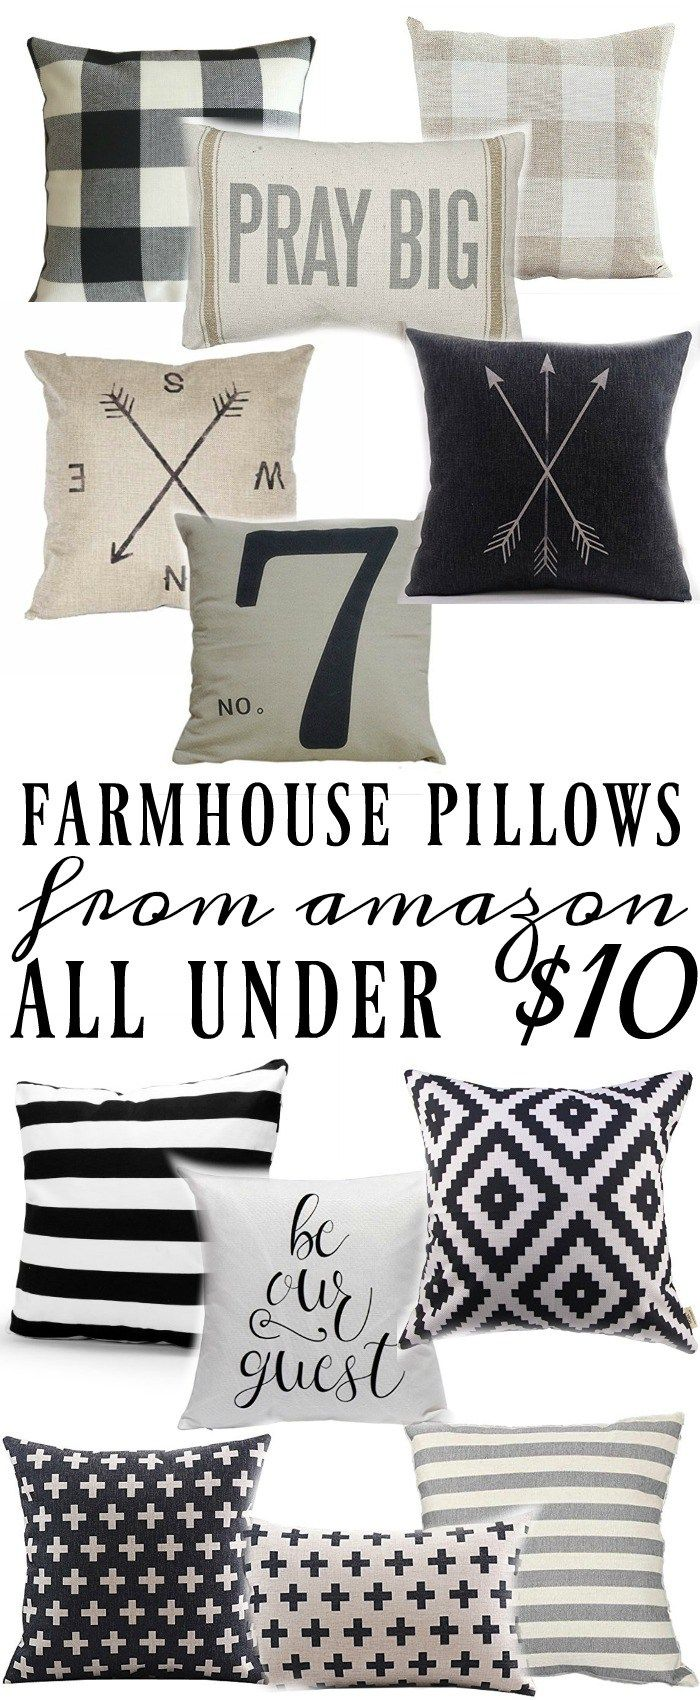 Cheap Decorative Pillows Under $10 Cool Farmhouse Style Pillows All Under $10  Big Pillows Grey Stripes Inspiration Design